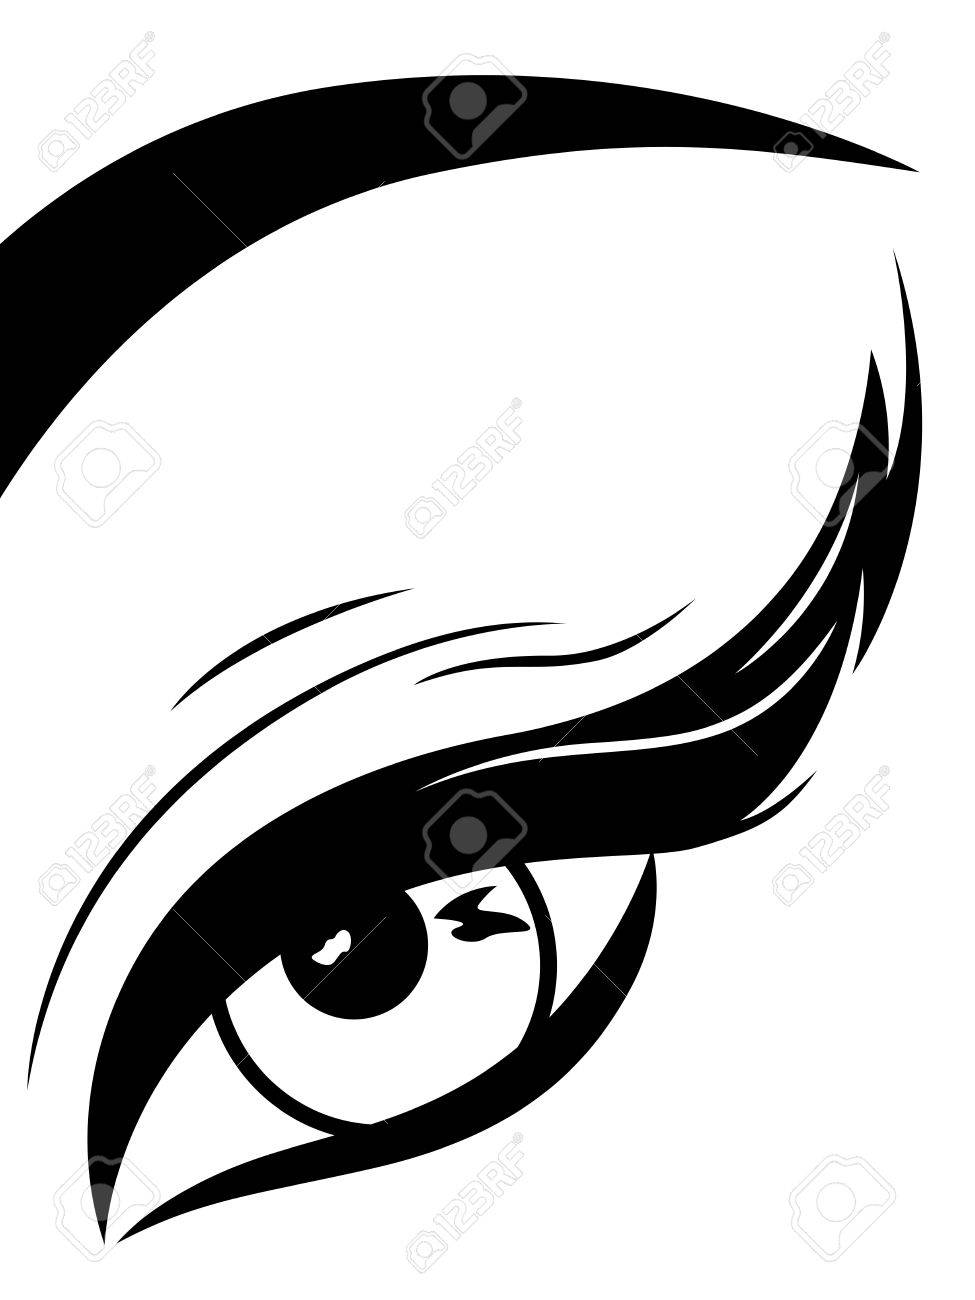 Eye with fluffy eyelid close-up, black and white hand drawing vector illustration - 38383944